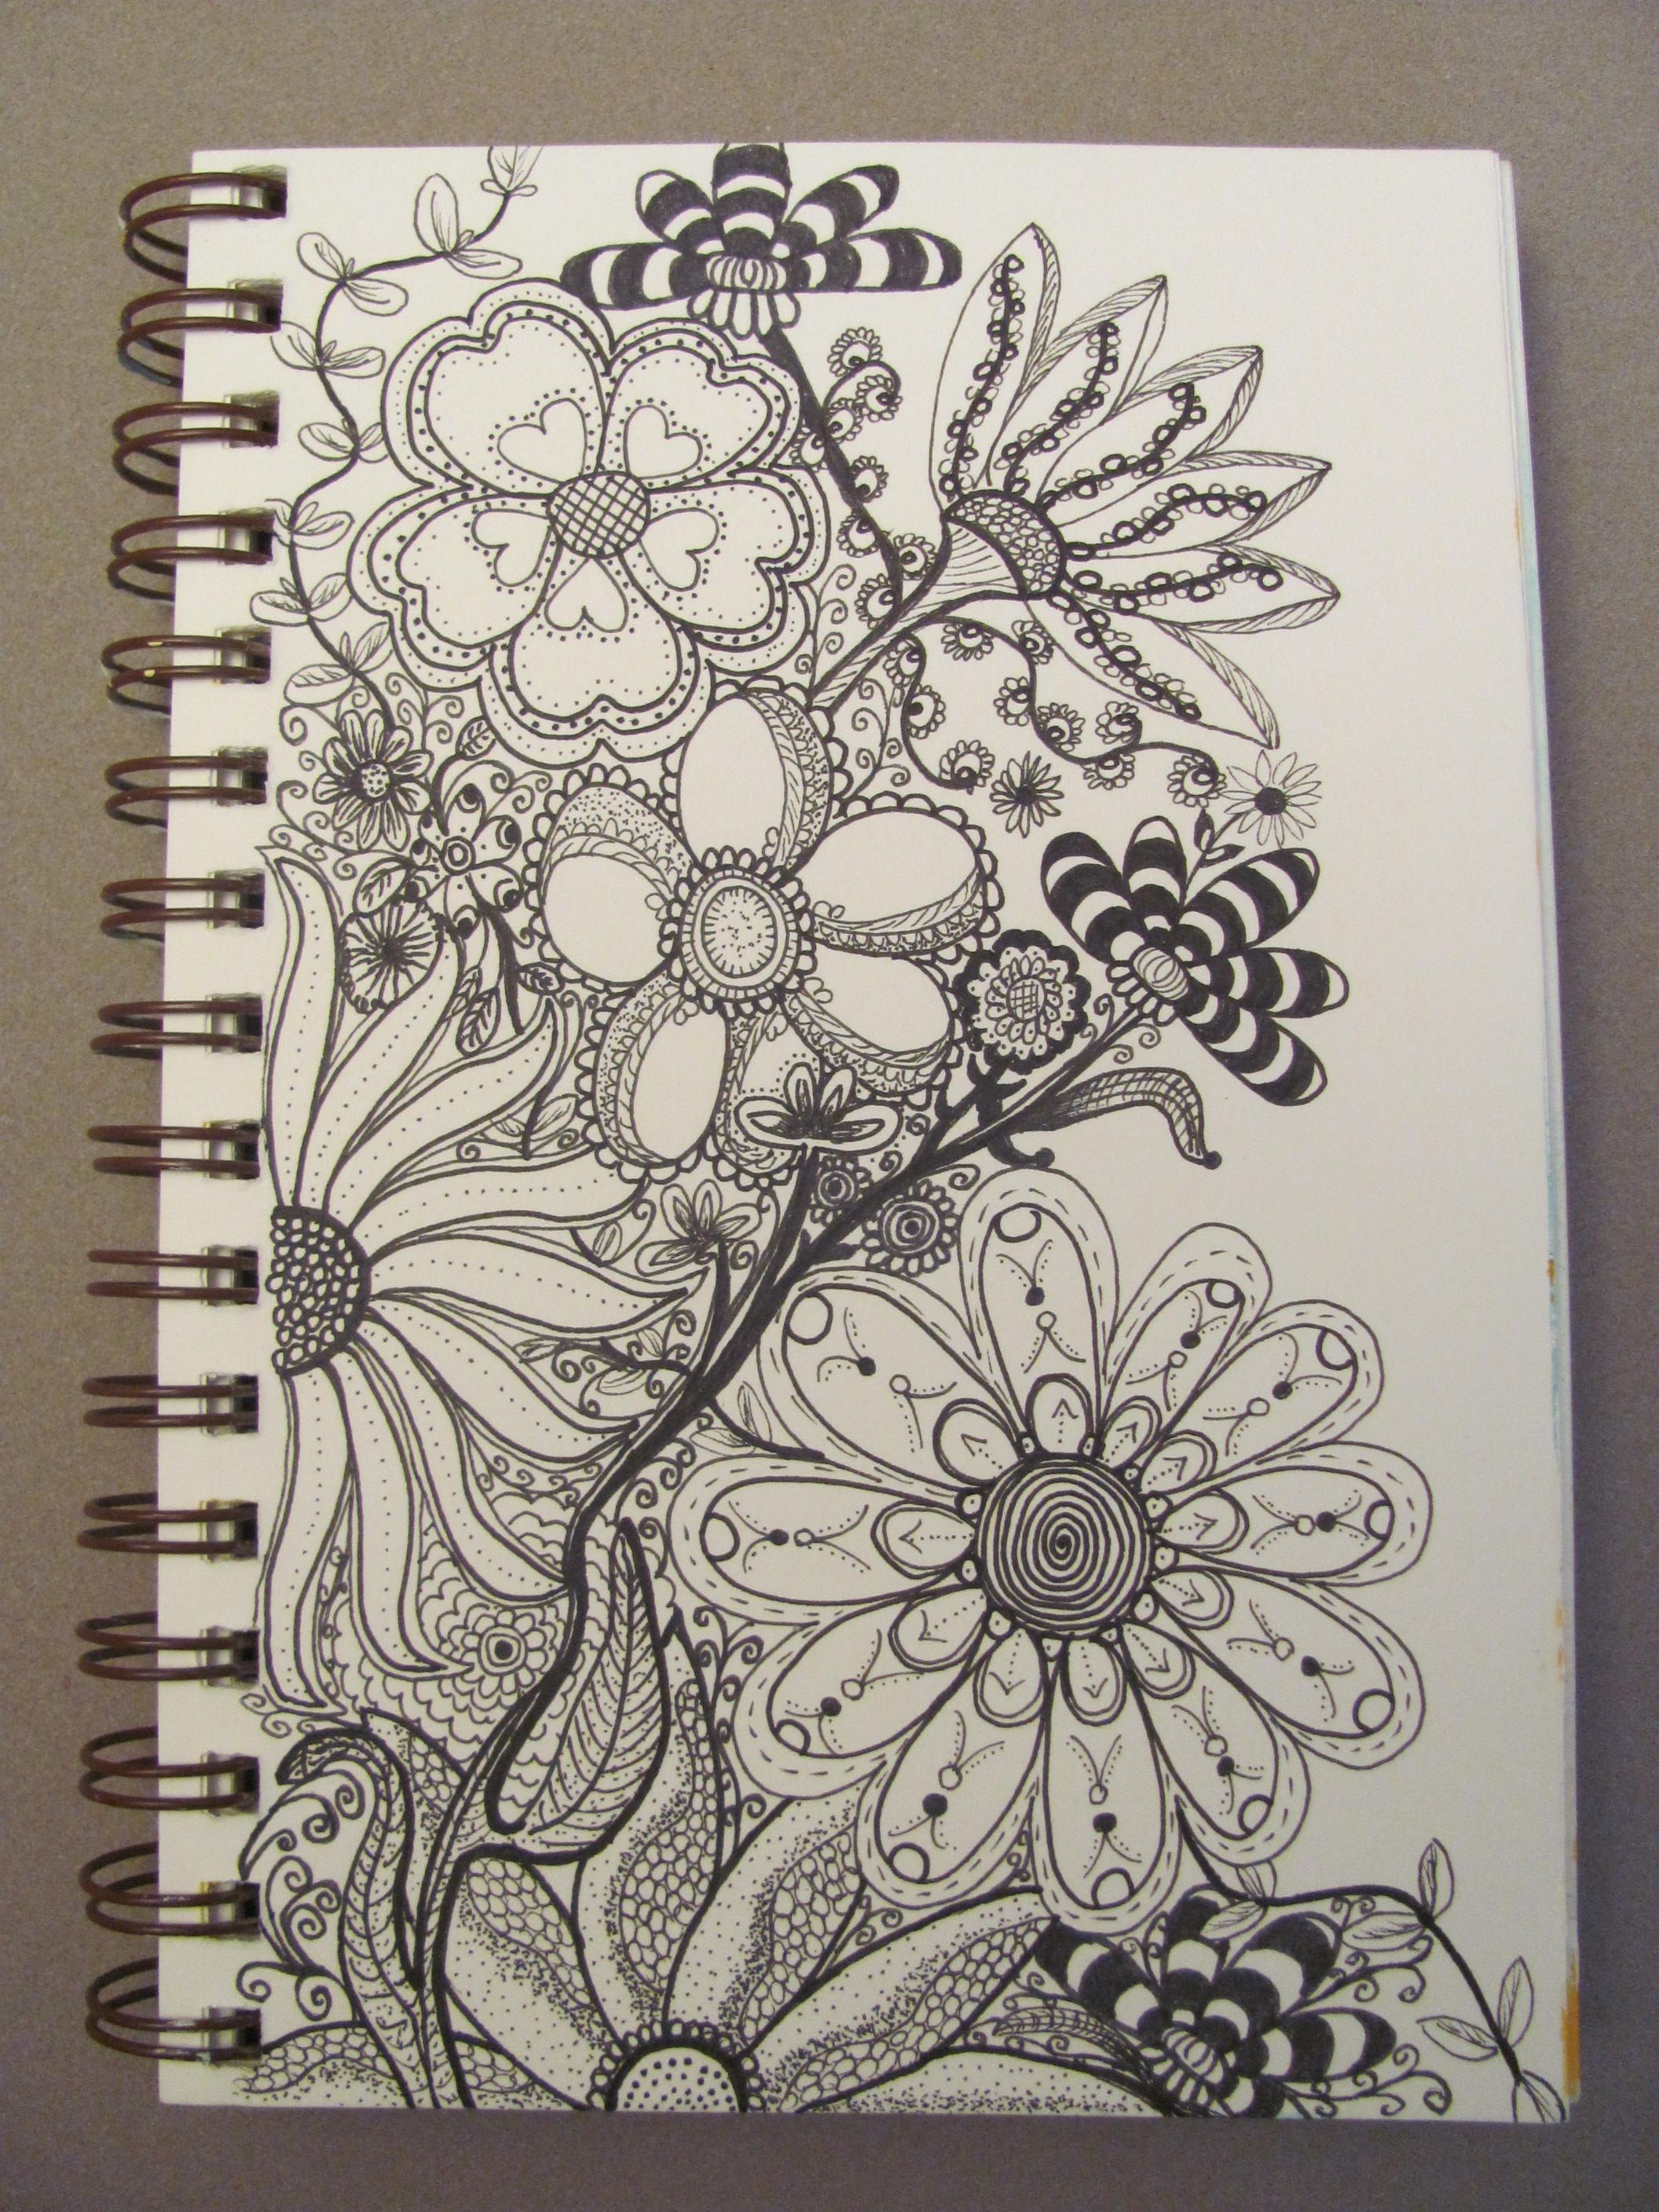 Pinky dinky doo lori b doodled this amazing bouquet for Amazing drawings of roses